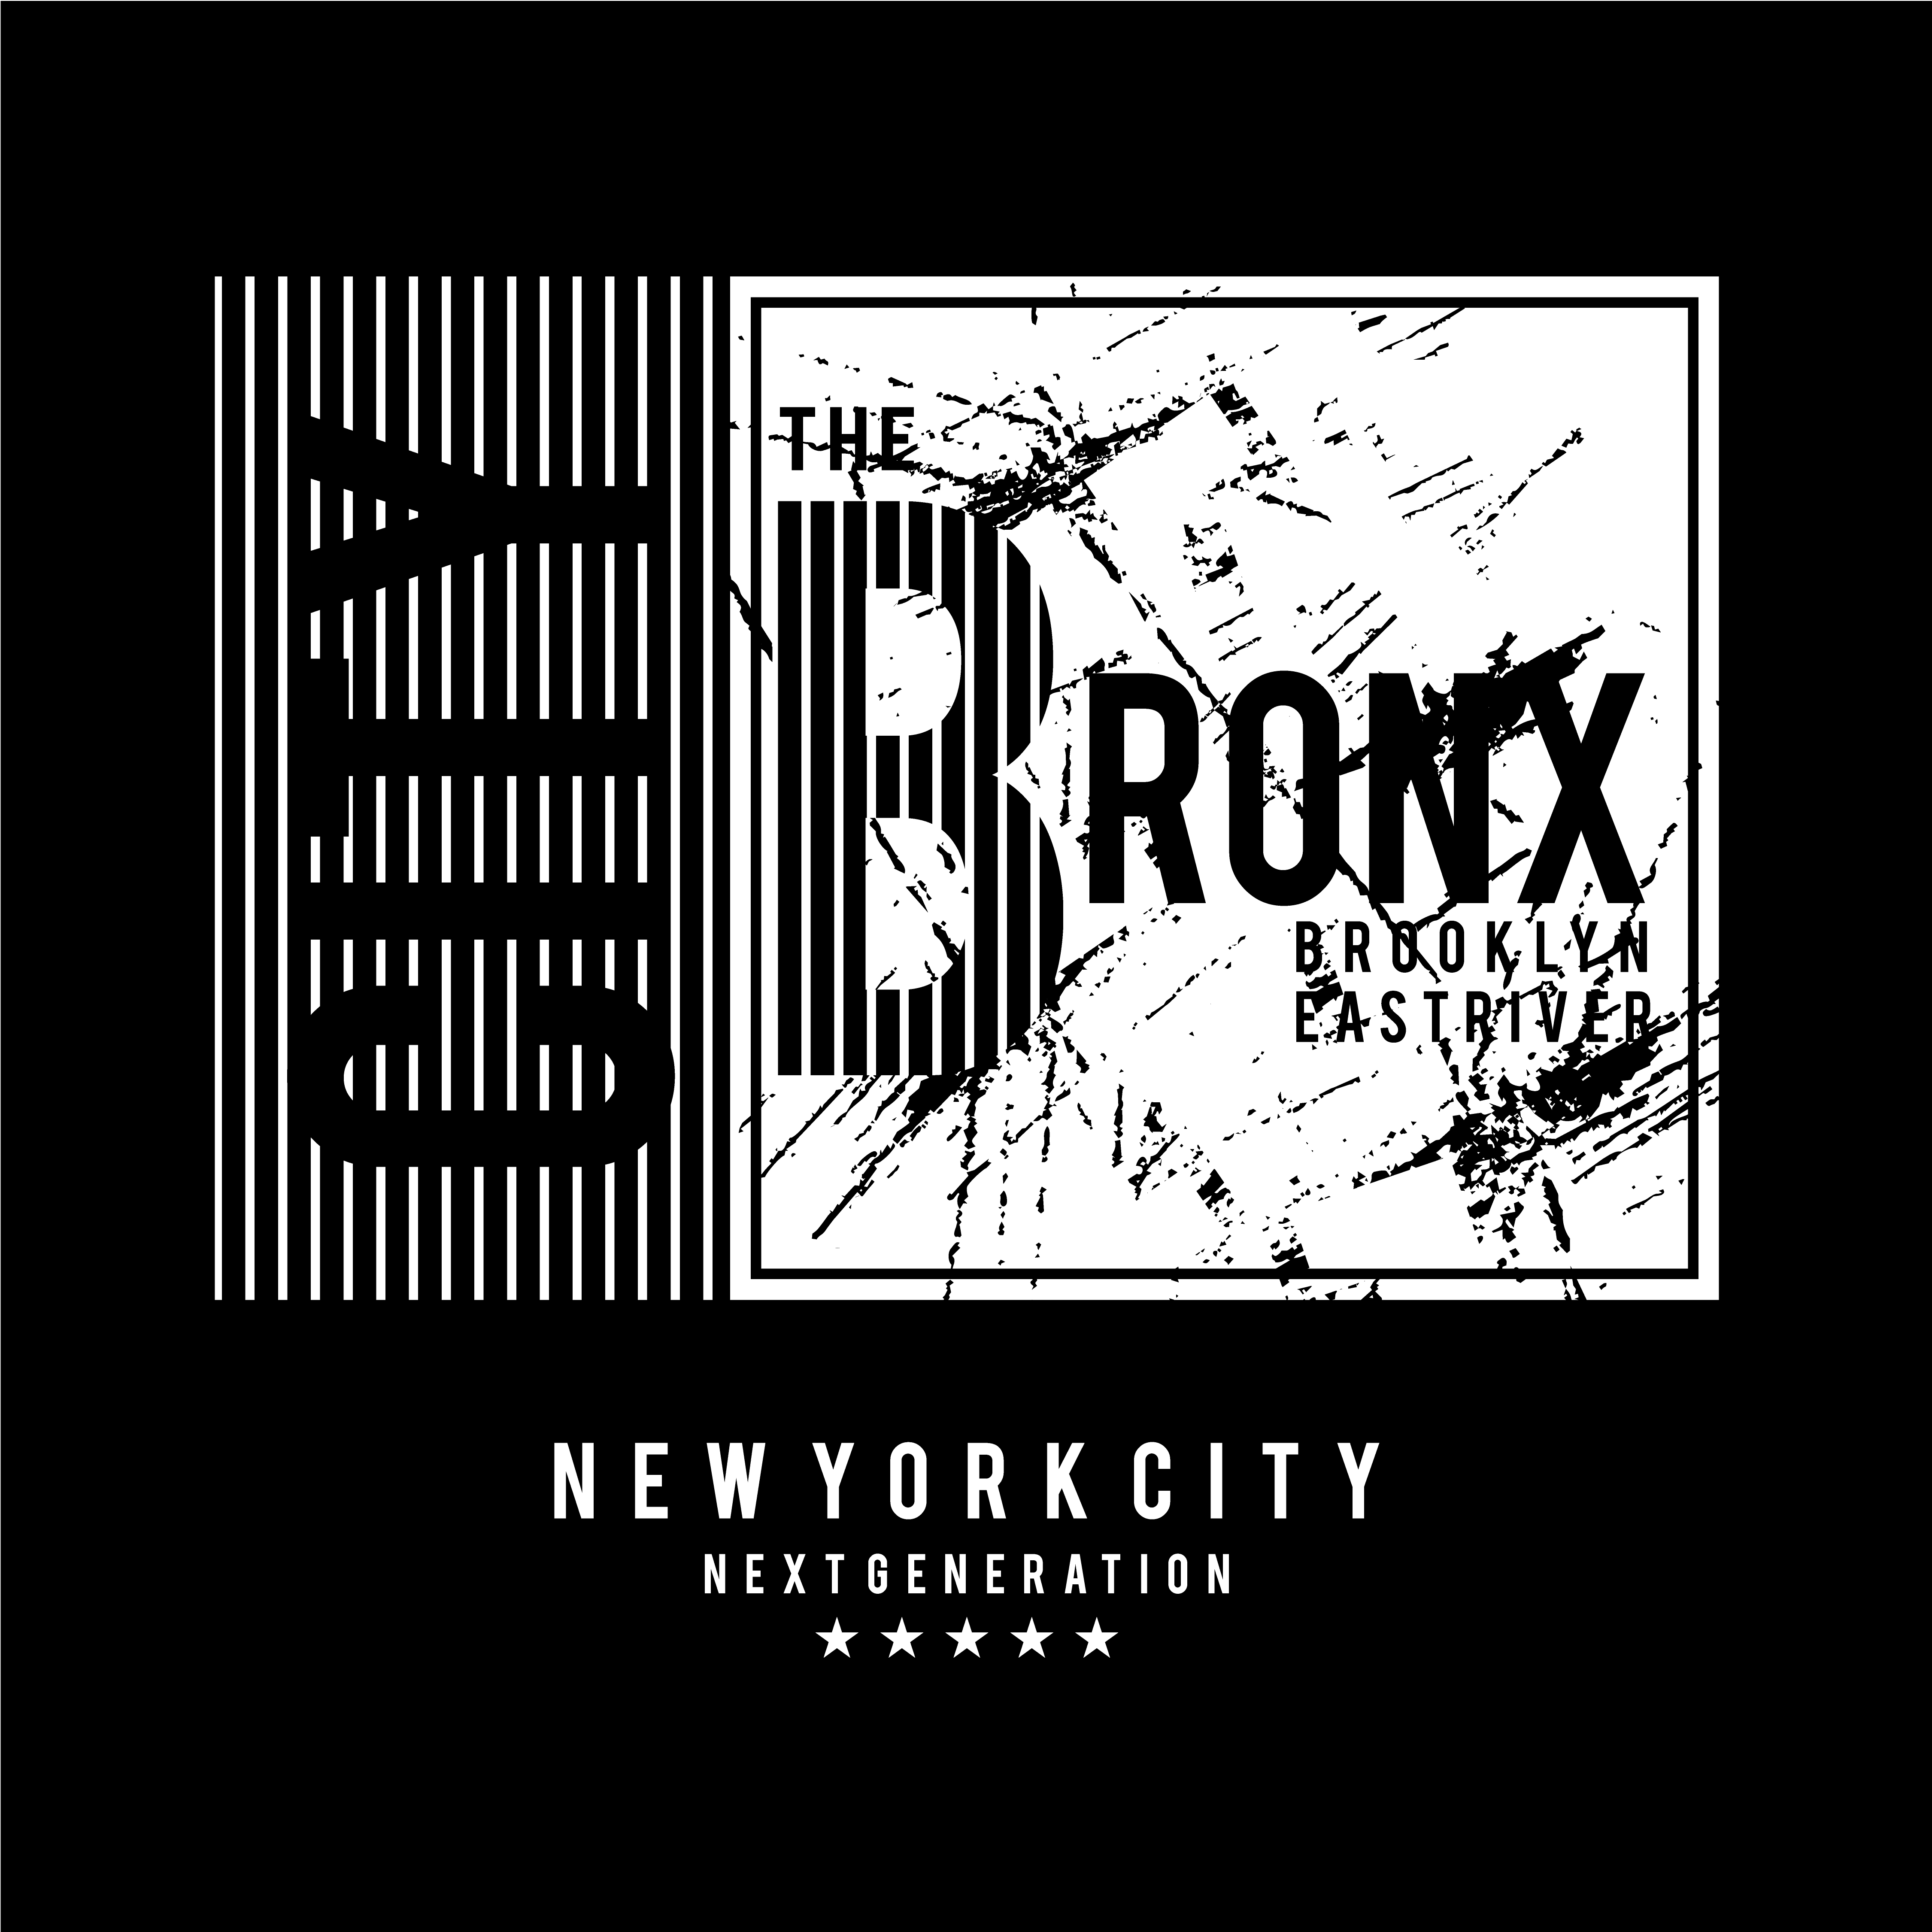 0b3e0fba5 the bronx typographic t shirt design graphic - Download Free Vector Art,  Stock Graphics & Images